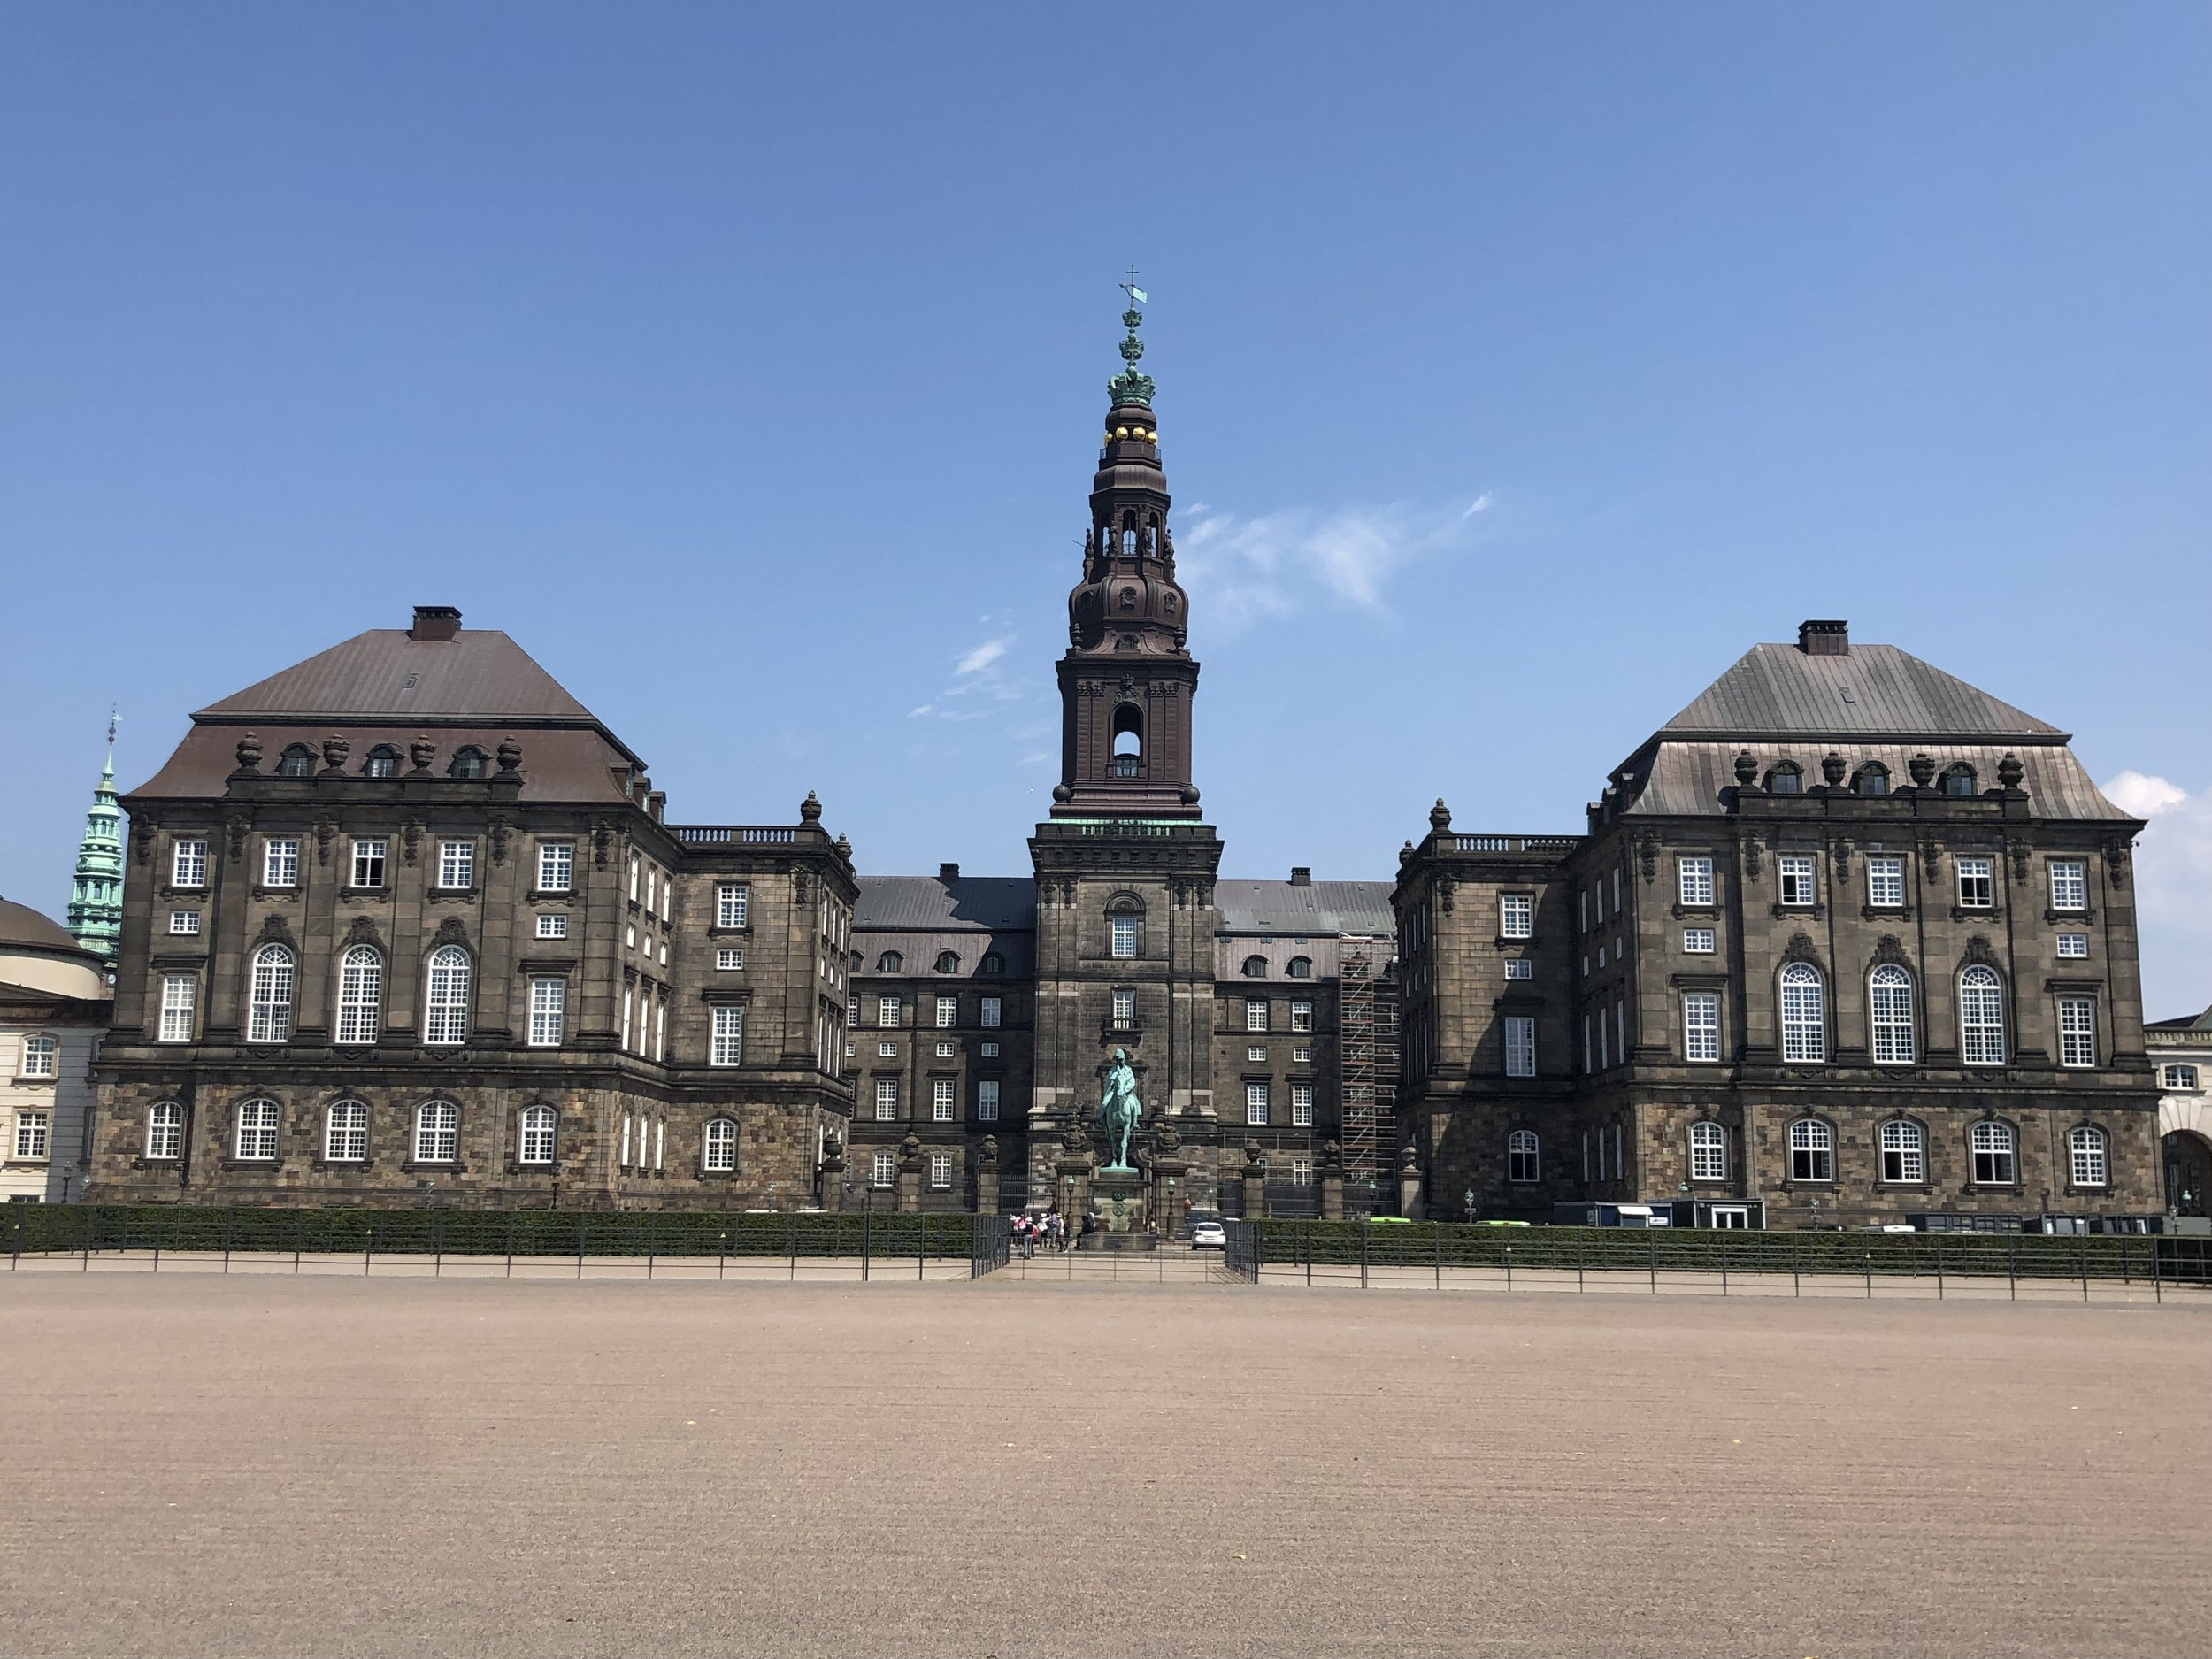 The current royal palace in Copenhagen.